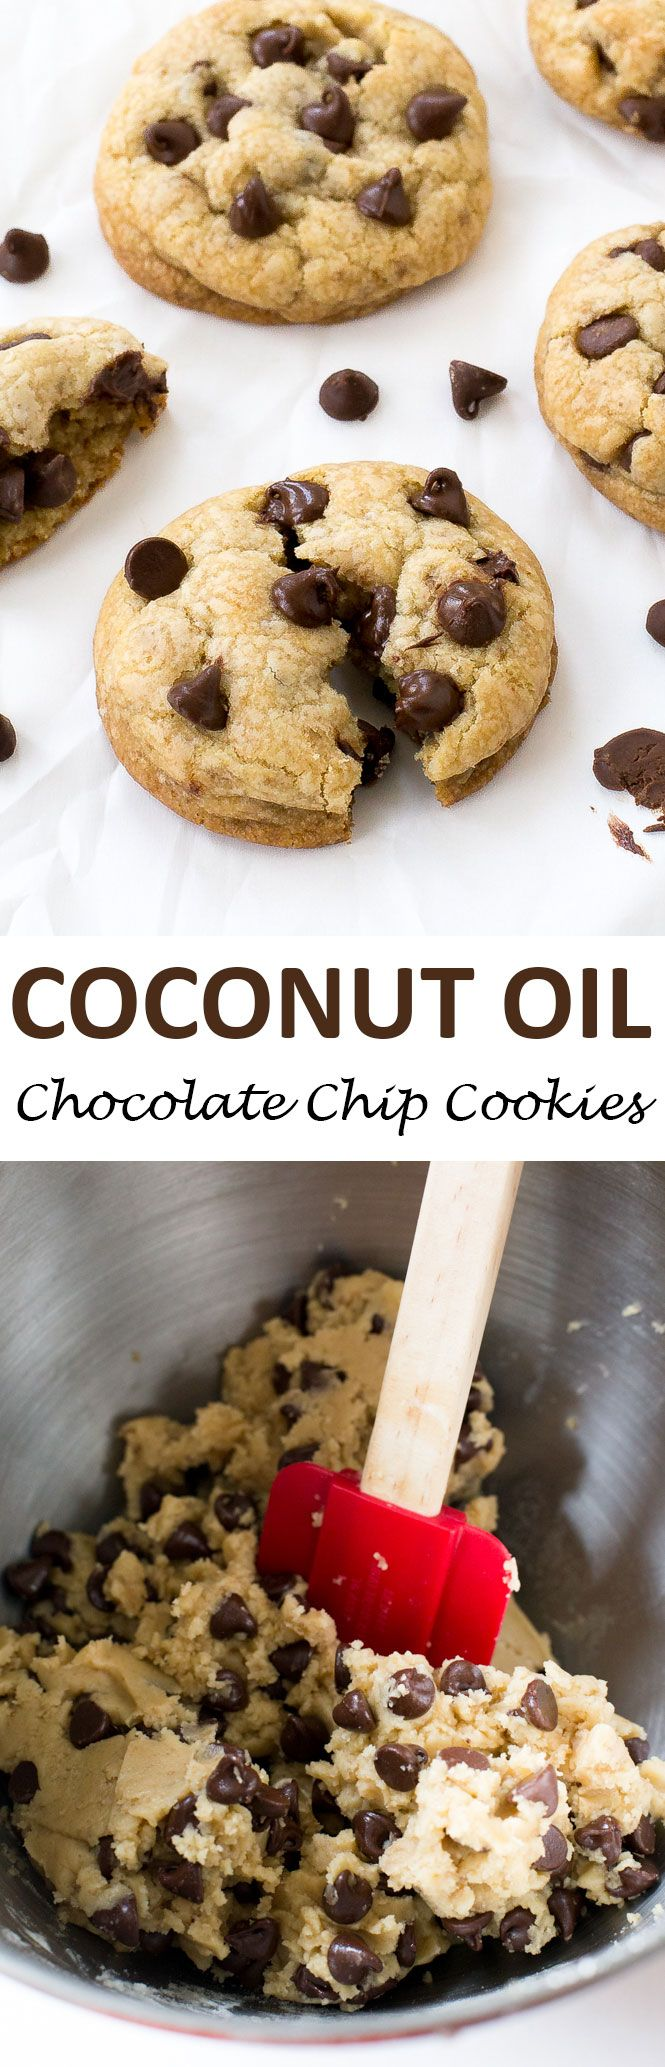 Coconut Oil Chocolate Chip Cookies made with coconut oil instead of butter. They are incredibly soft on the inside and firm on the edges. Thick and fluffy and loaded with tons of chocolate chips! | chefsavvy.com #recipe #coconut #oil #chocolate #chip #cookies #dessert